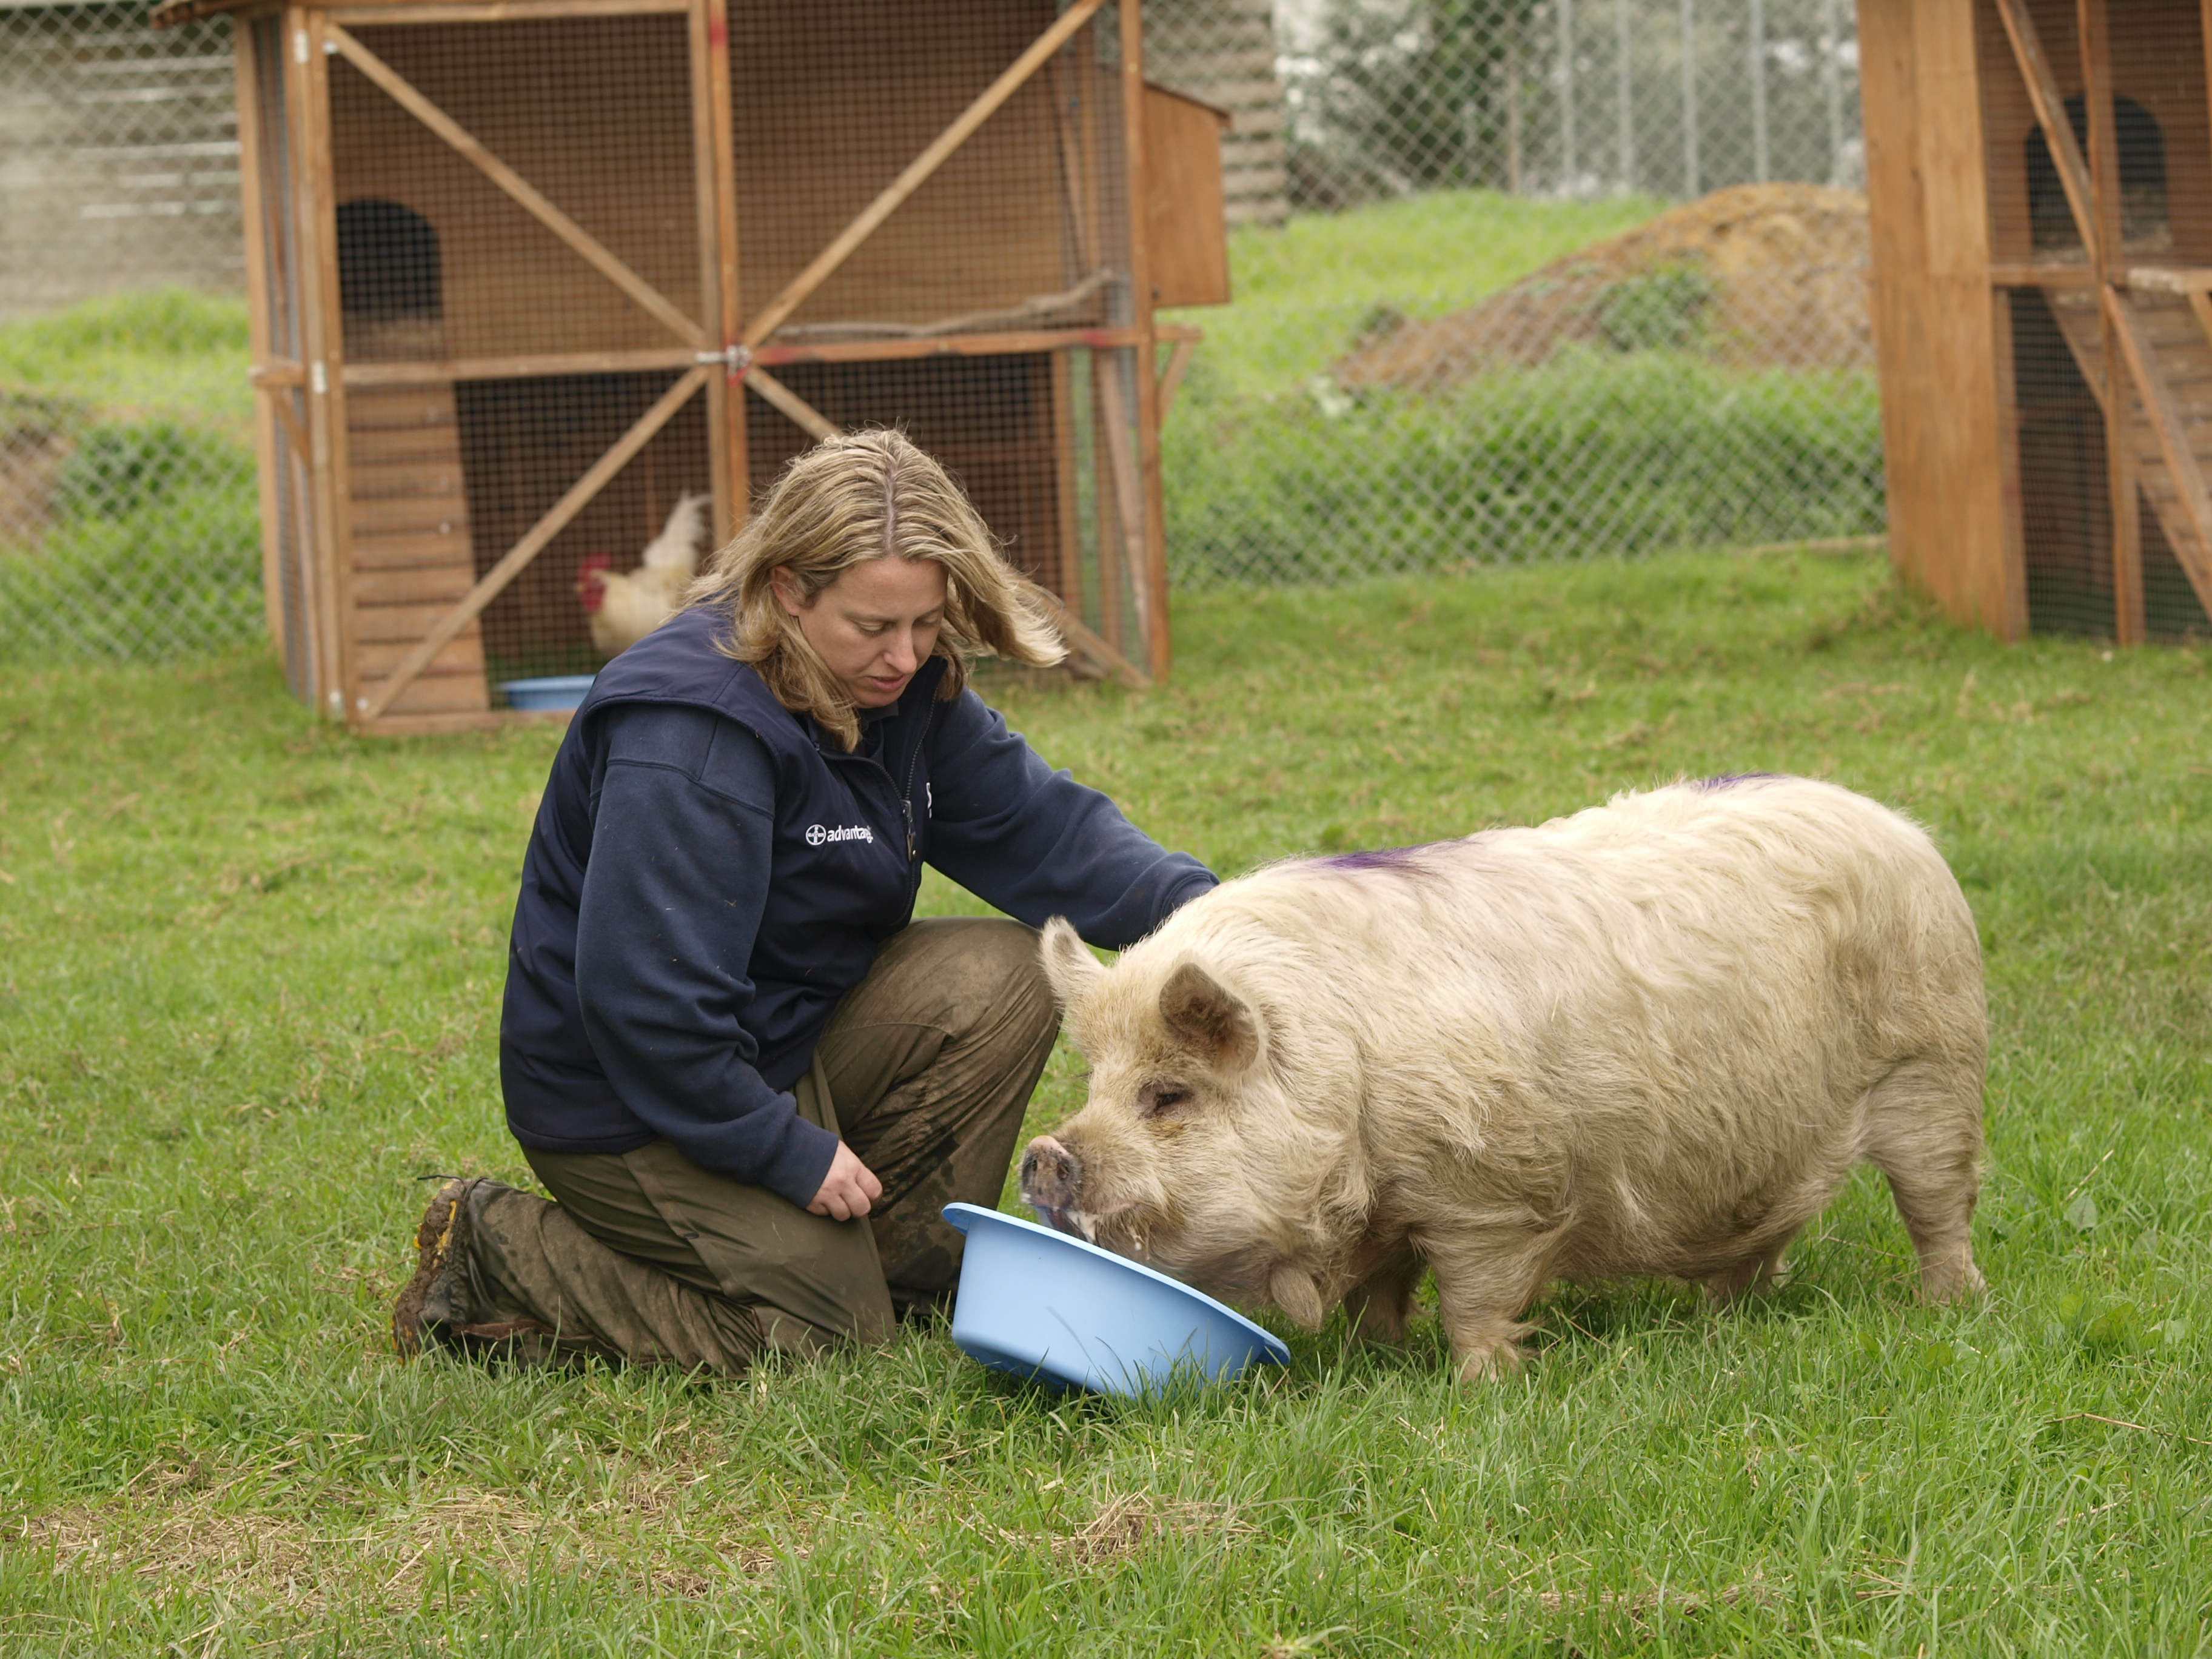 Caring for a kune kune pig